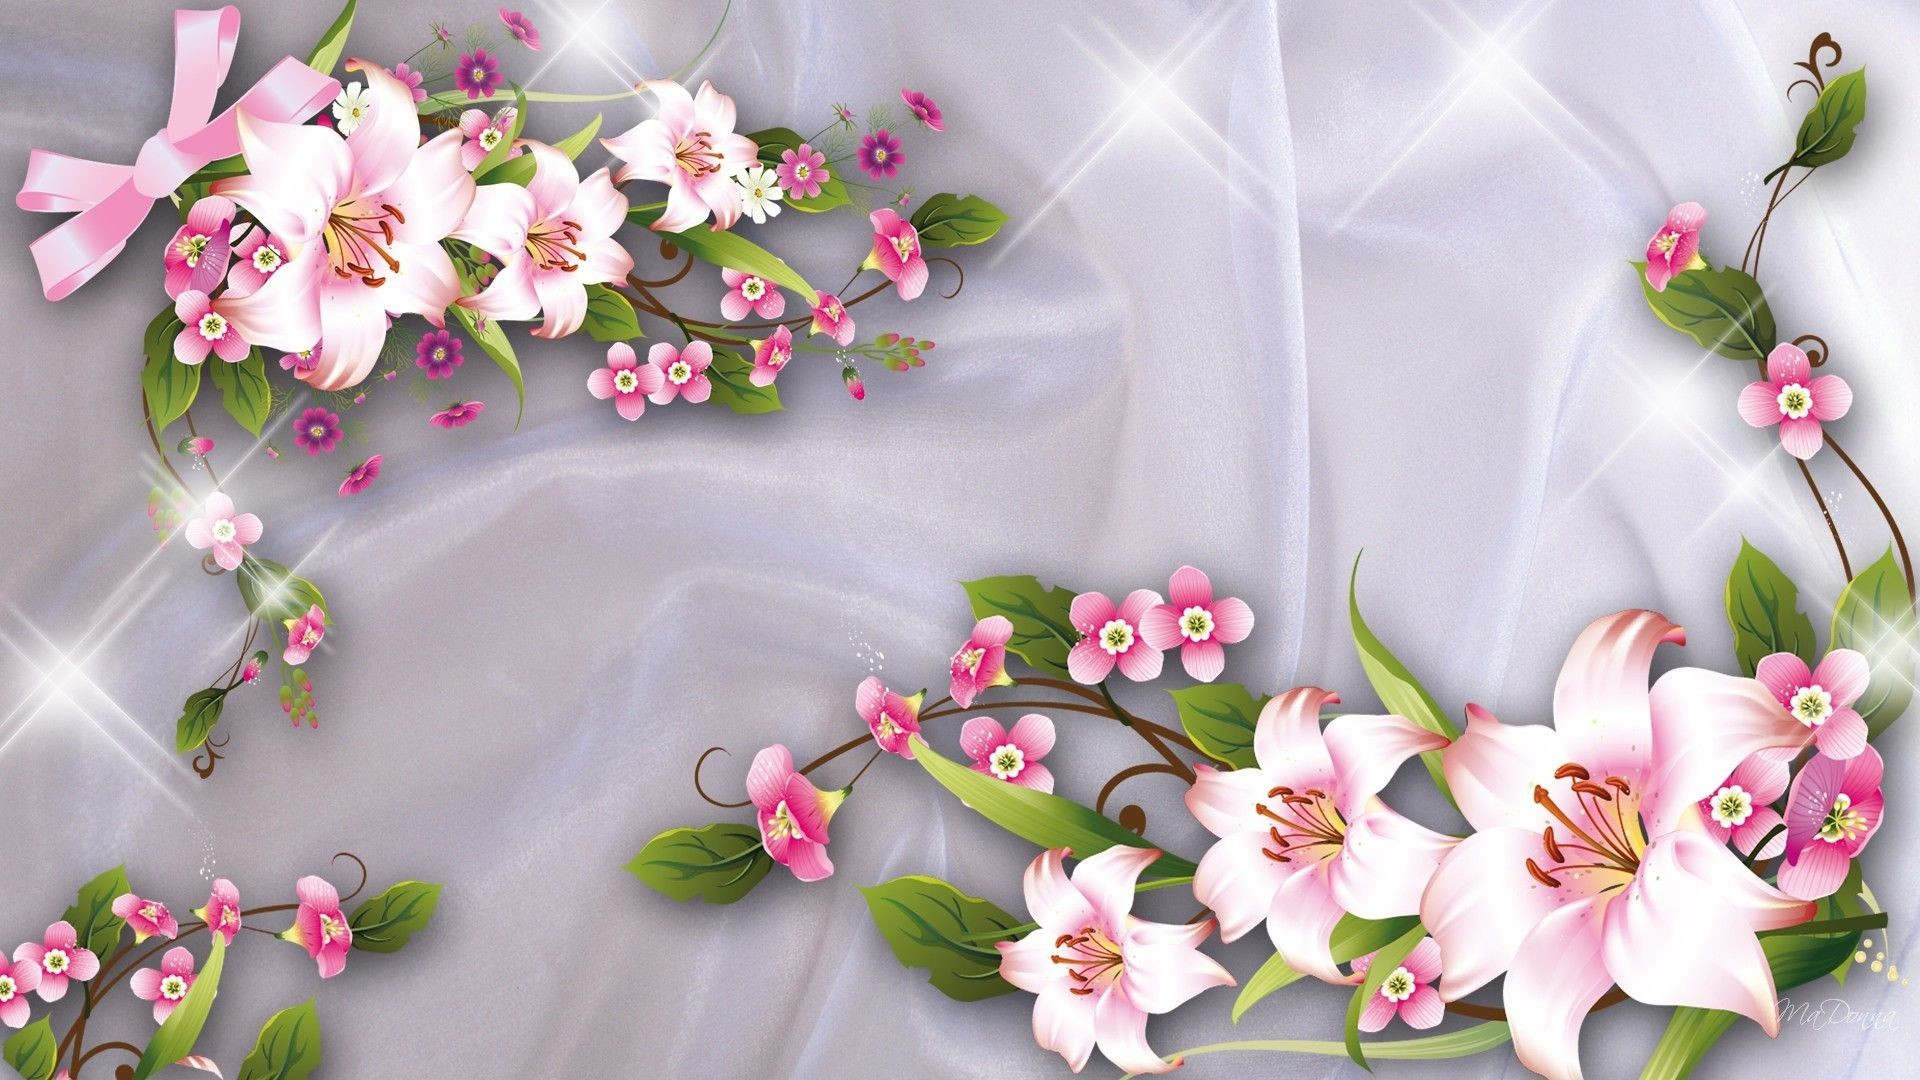 Flowers For Desktop Background Posted By Ryan Walker